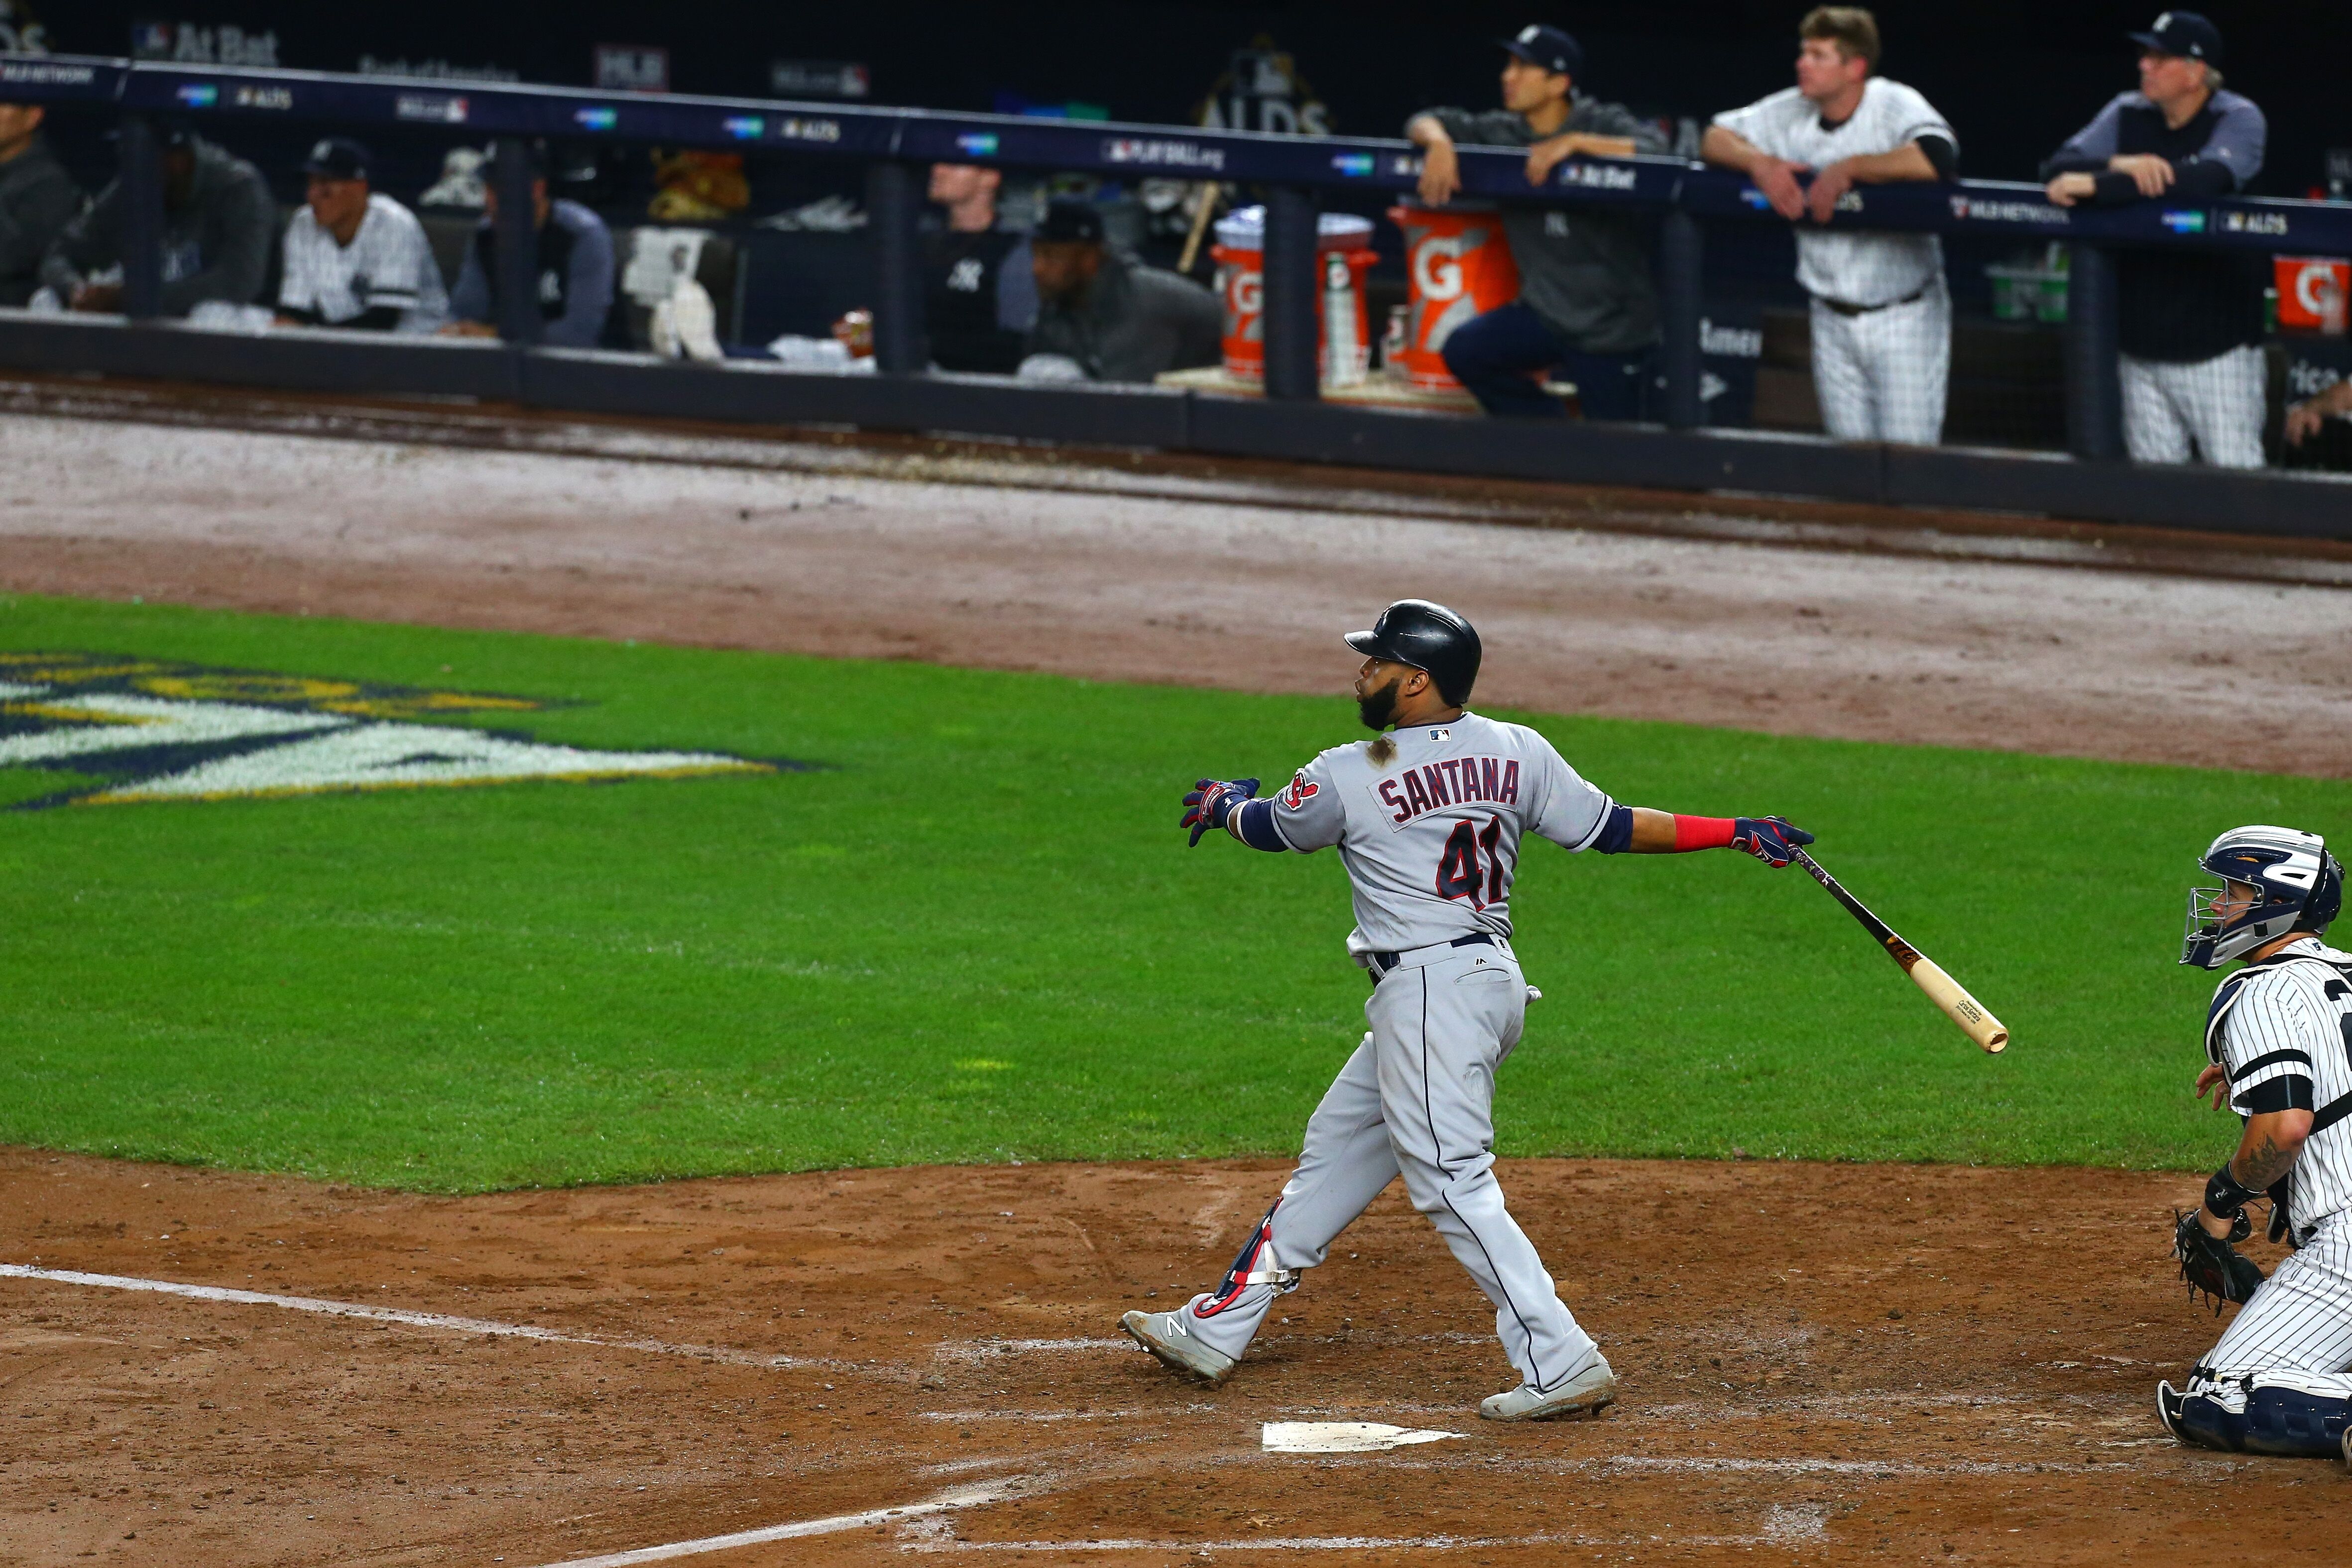 859538476-divisional-round-cleveland-indians-v-new-york-yankees-game-four.jpg